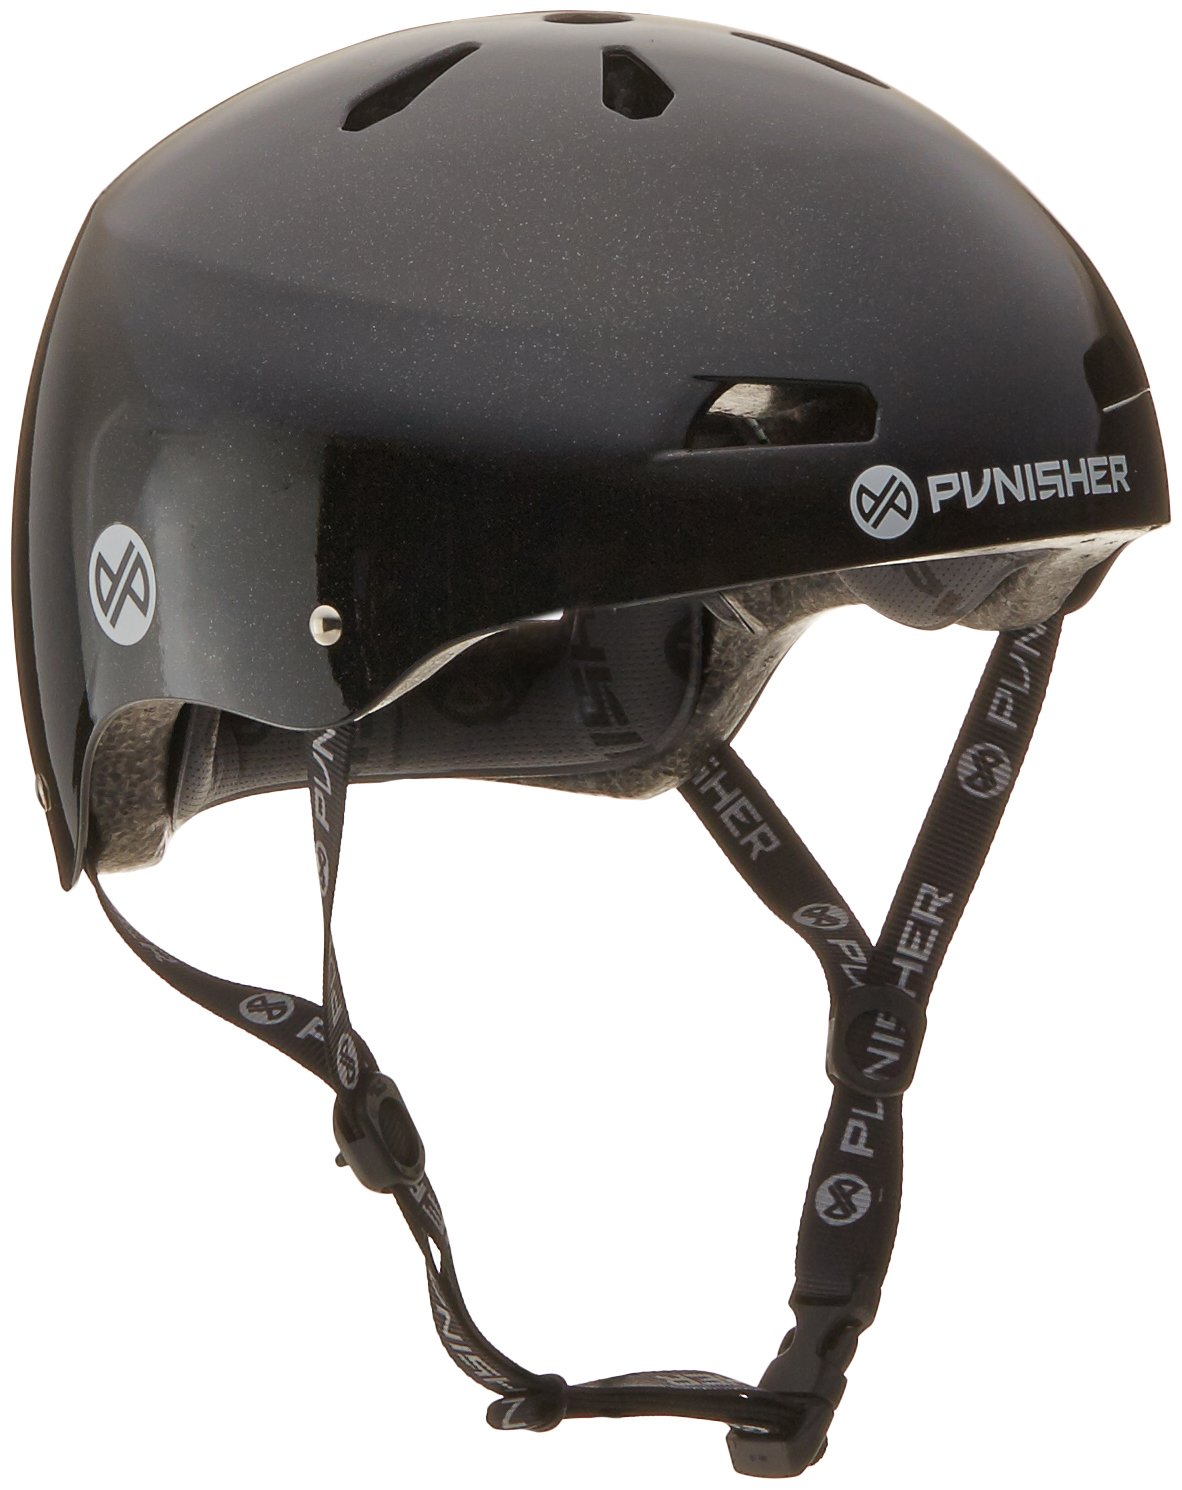 Punisher Skateboard Helmet Pro